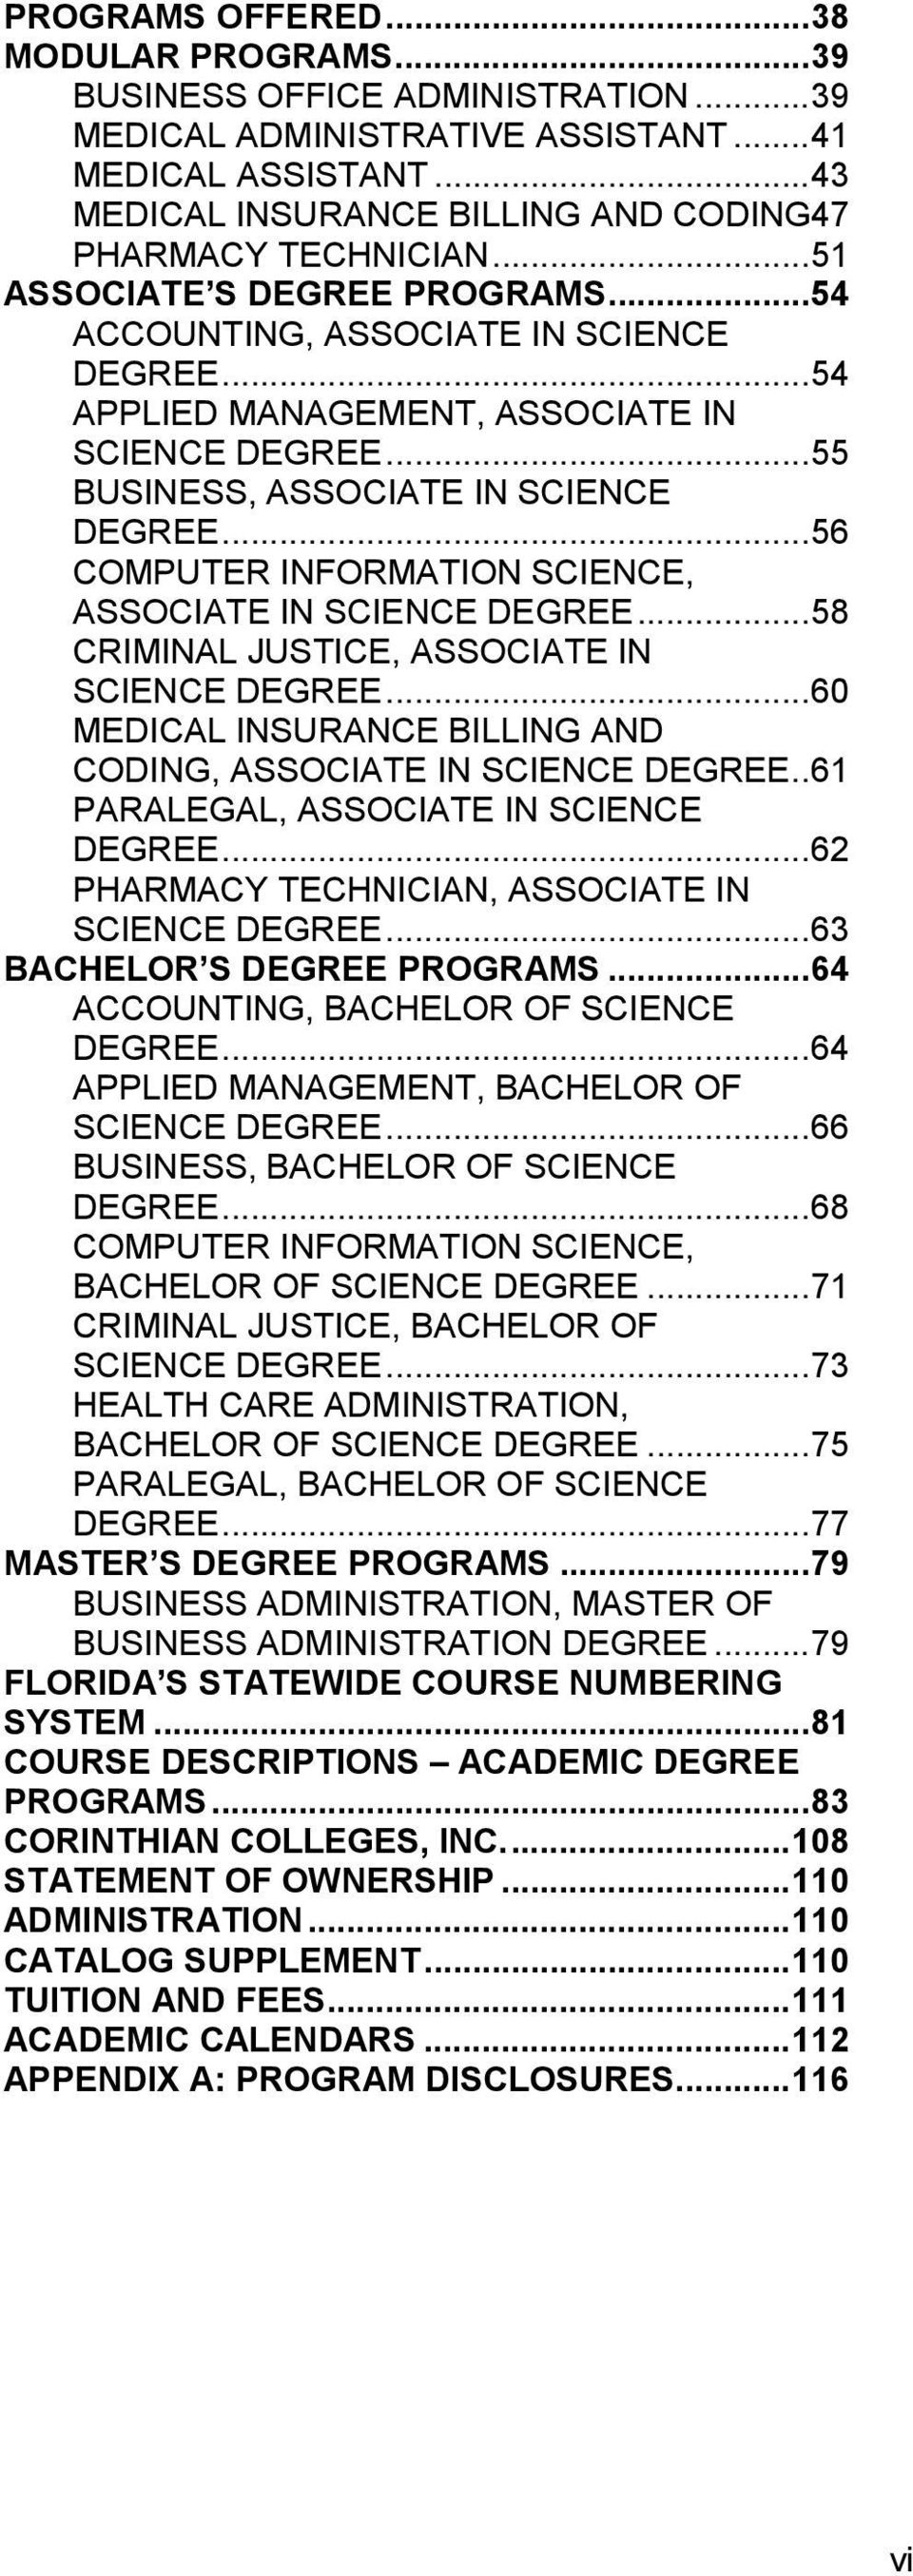 .. 55 BUSINESS, ASSOCIATE IN SCIENCE DEGREE... 56 COMPUTER INFORMATION SCIENCE, ASSOCIATE IN SCIENCE DEGREE... 58 CRIMINAL JUSTICE, ASSOCIATE IN SCIENCE DEGREE.